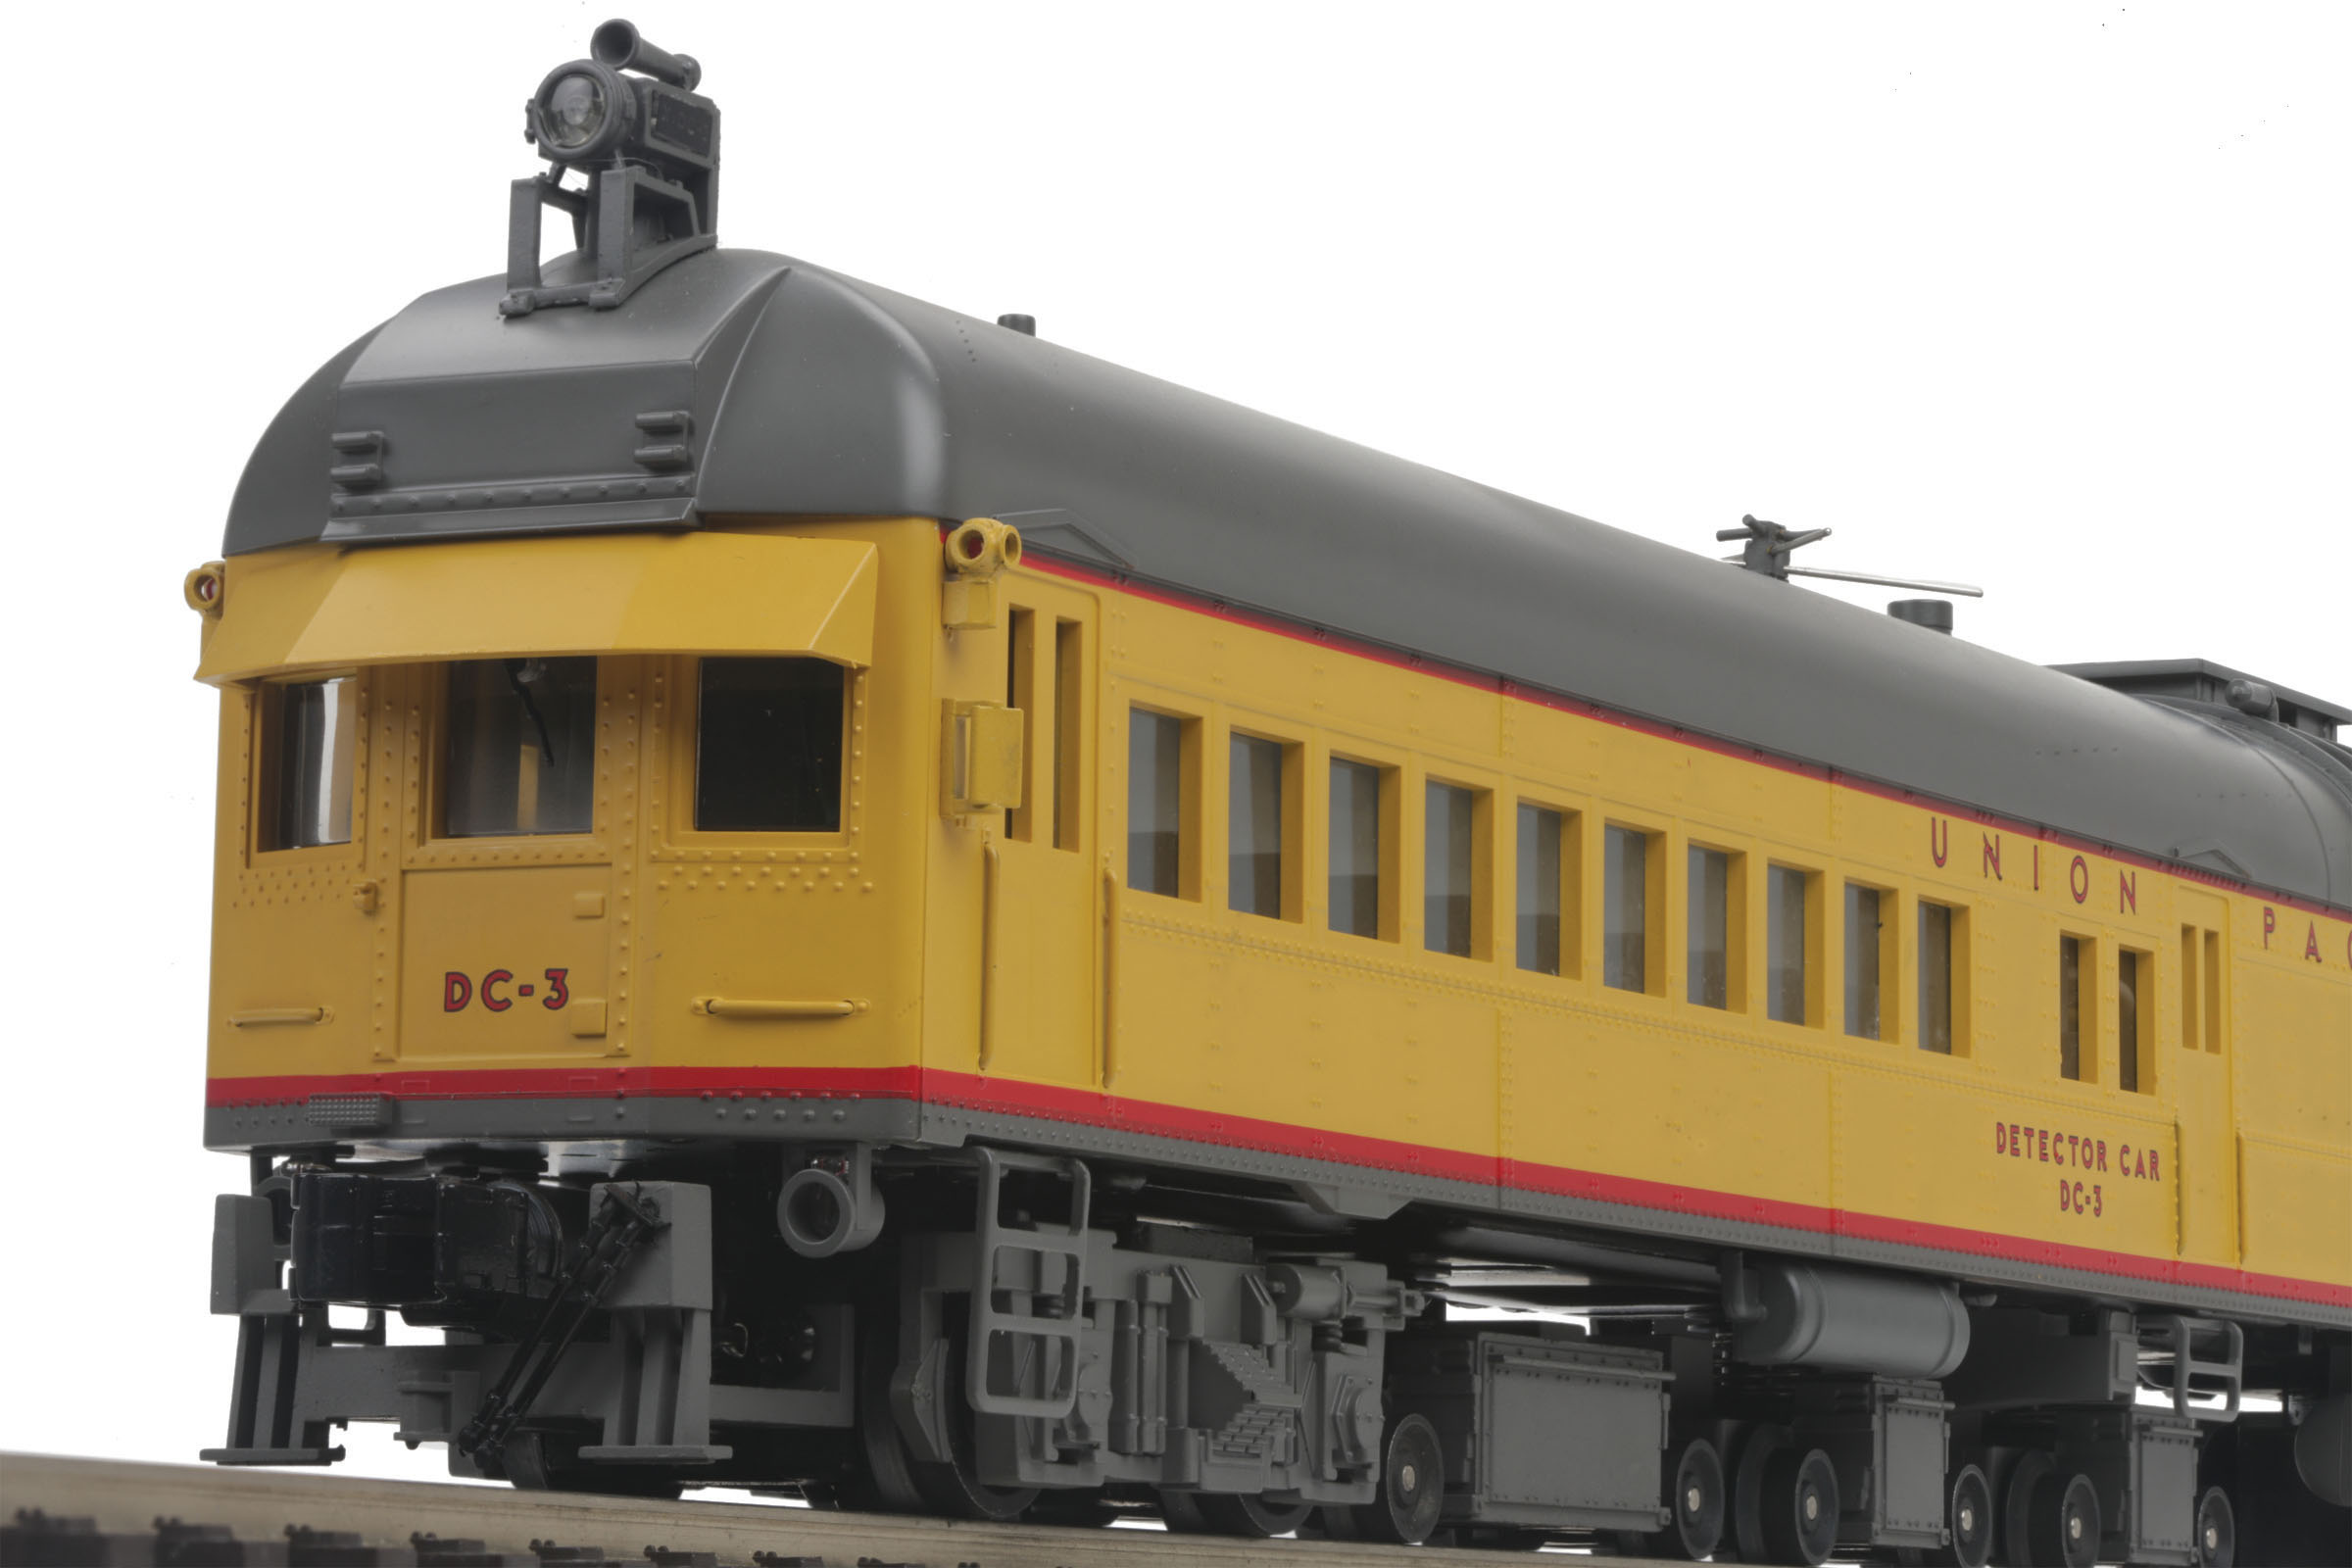 Union Pacific DC-3 Rail Inspection Car image